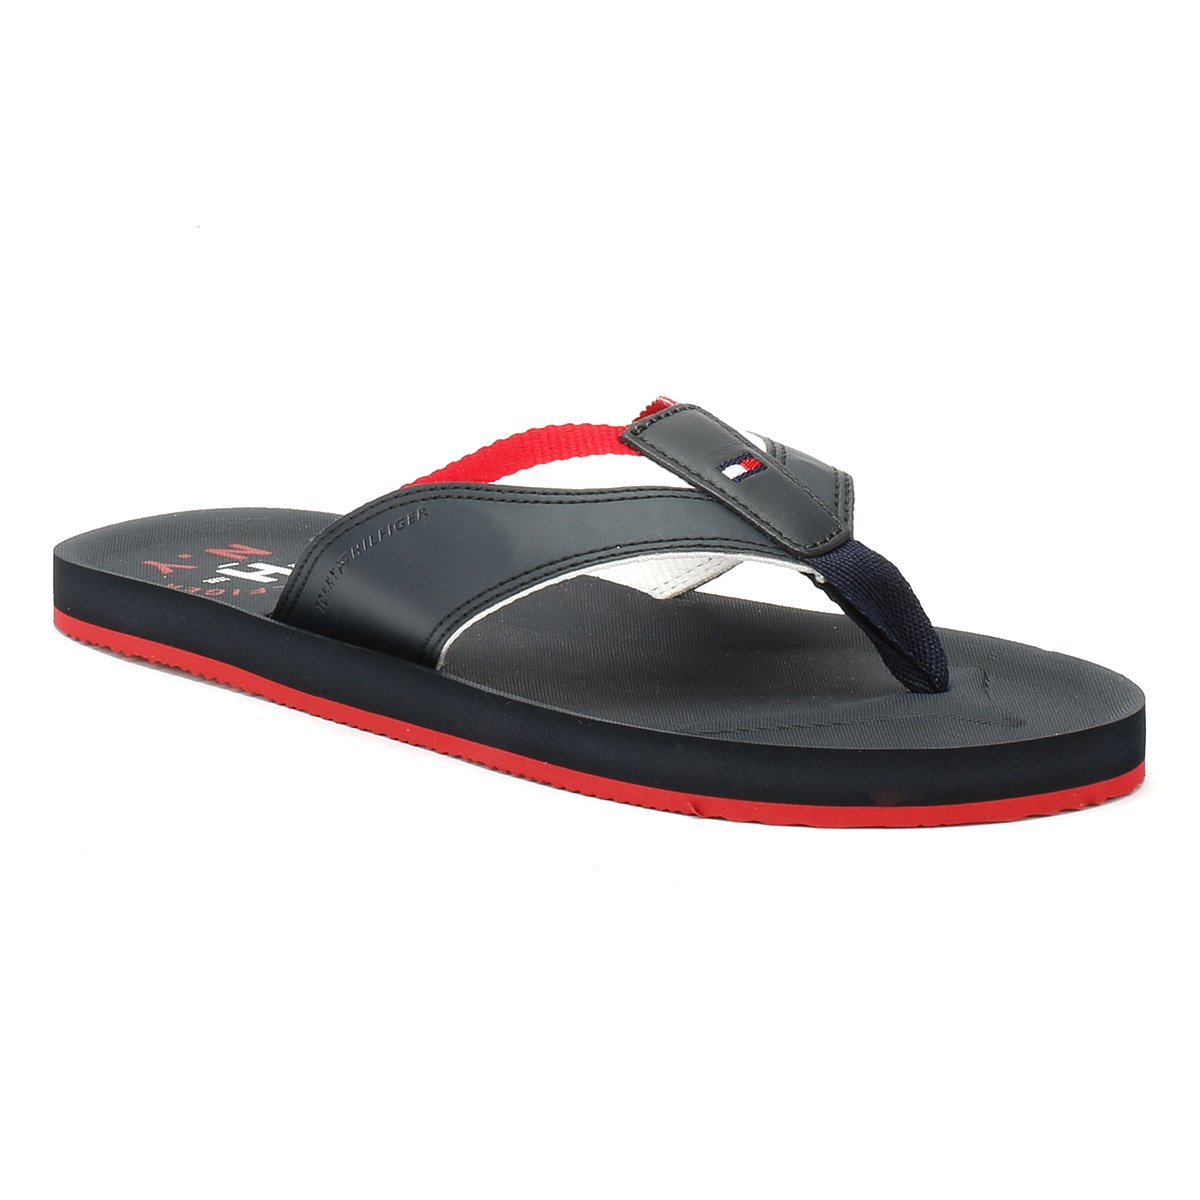 37b5b0706530 Tommy Hilfiger Men s Mix Webbing Synthetic Beach Sandal  Midnight-Midnight-11  Amazon.co.uk  Shoes   Bags